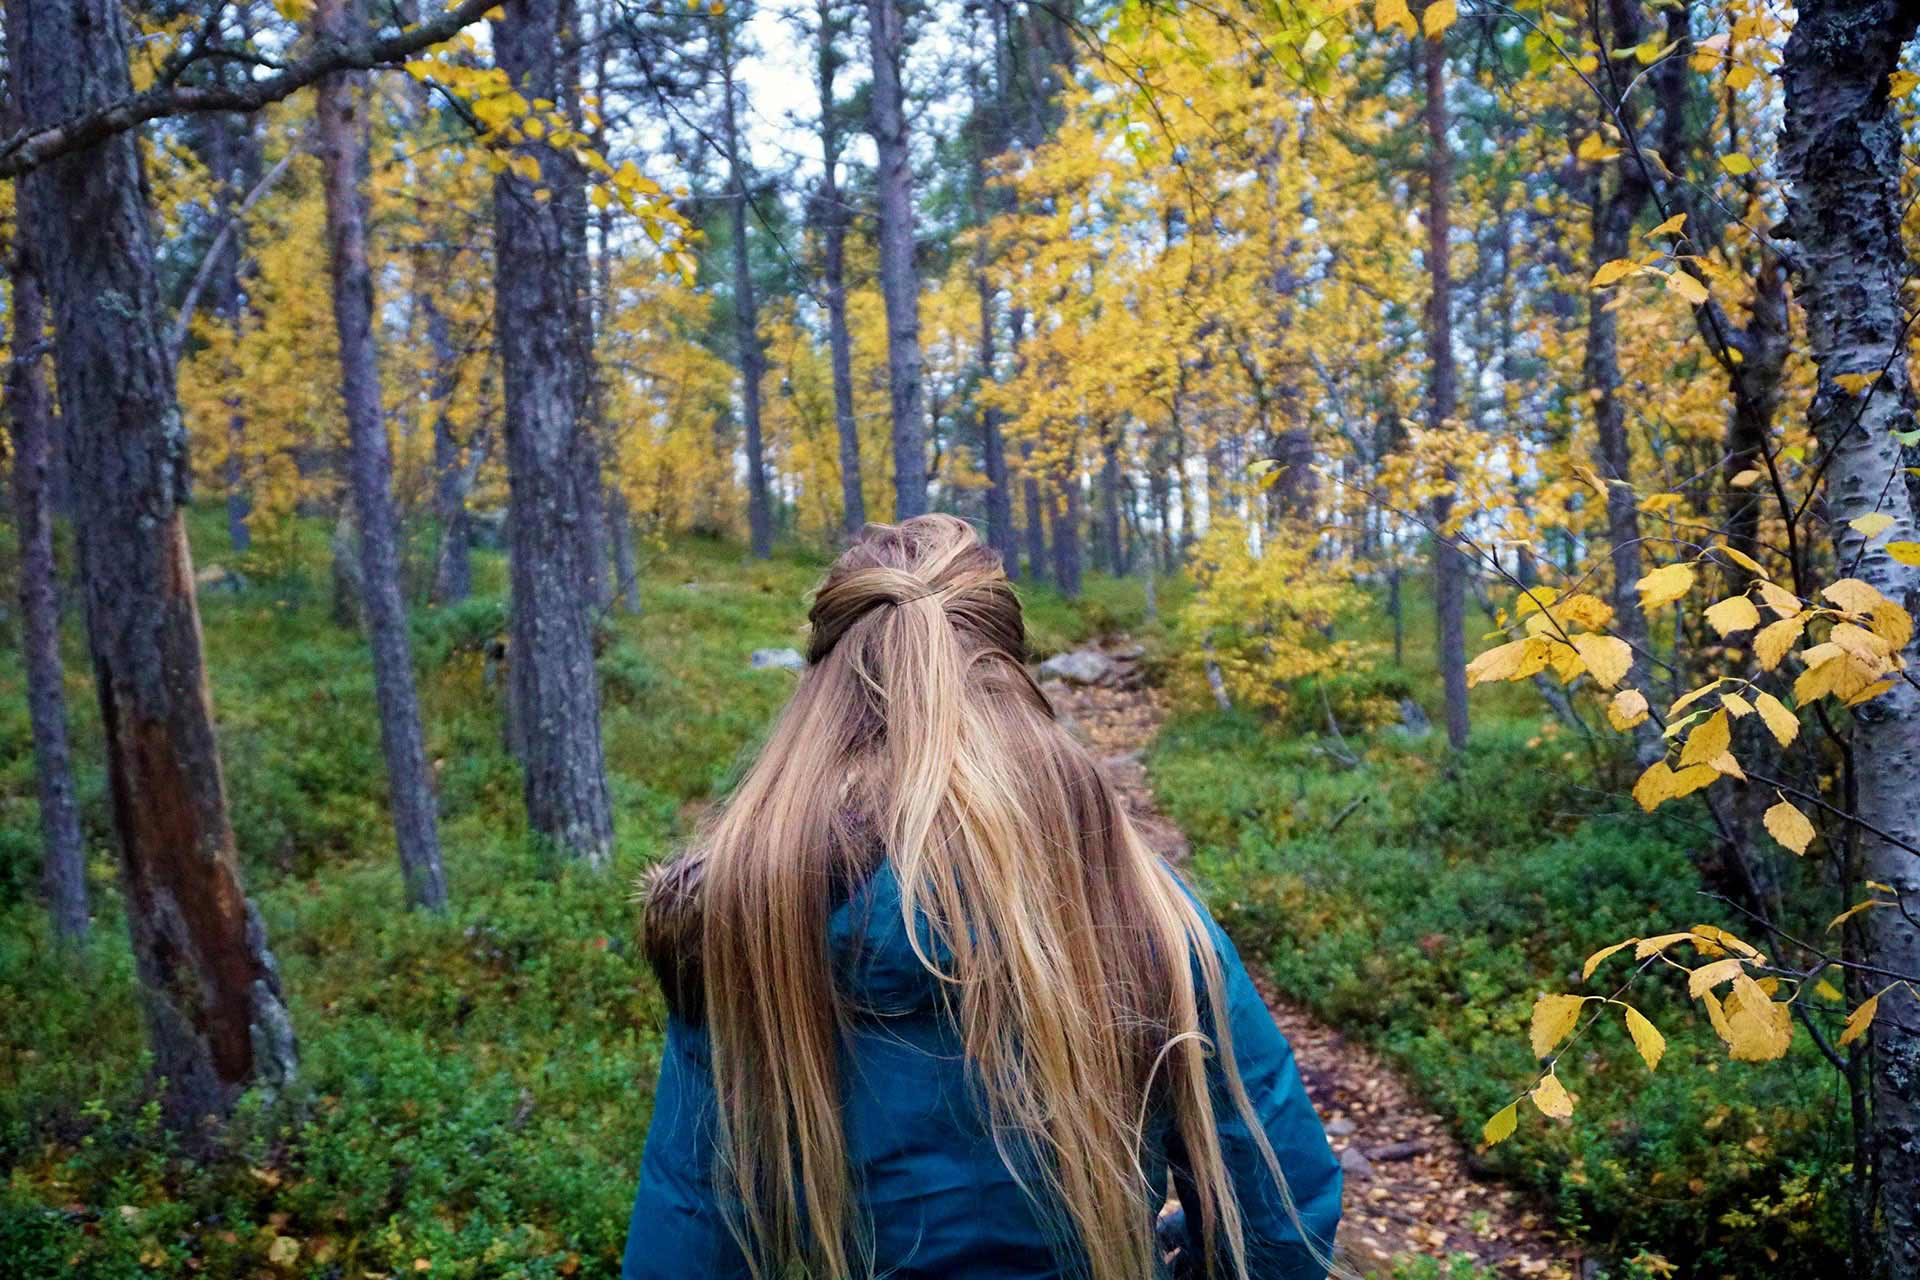 Cali Girl Travels World a travel blogger walking through along a path through Finnish nature in Inari, Lapland.